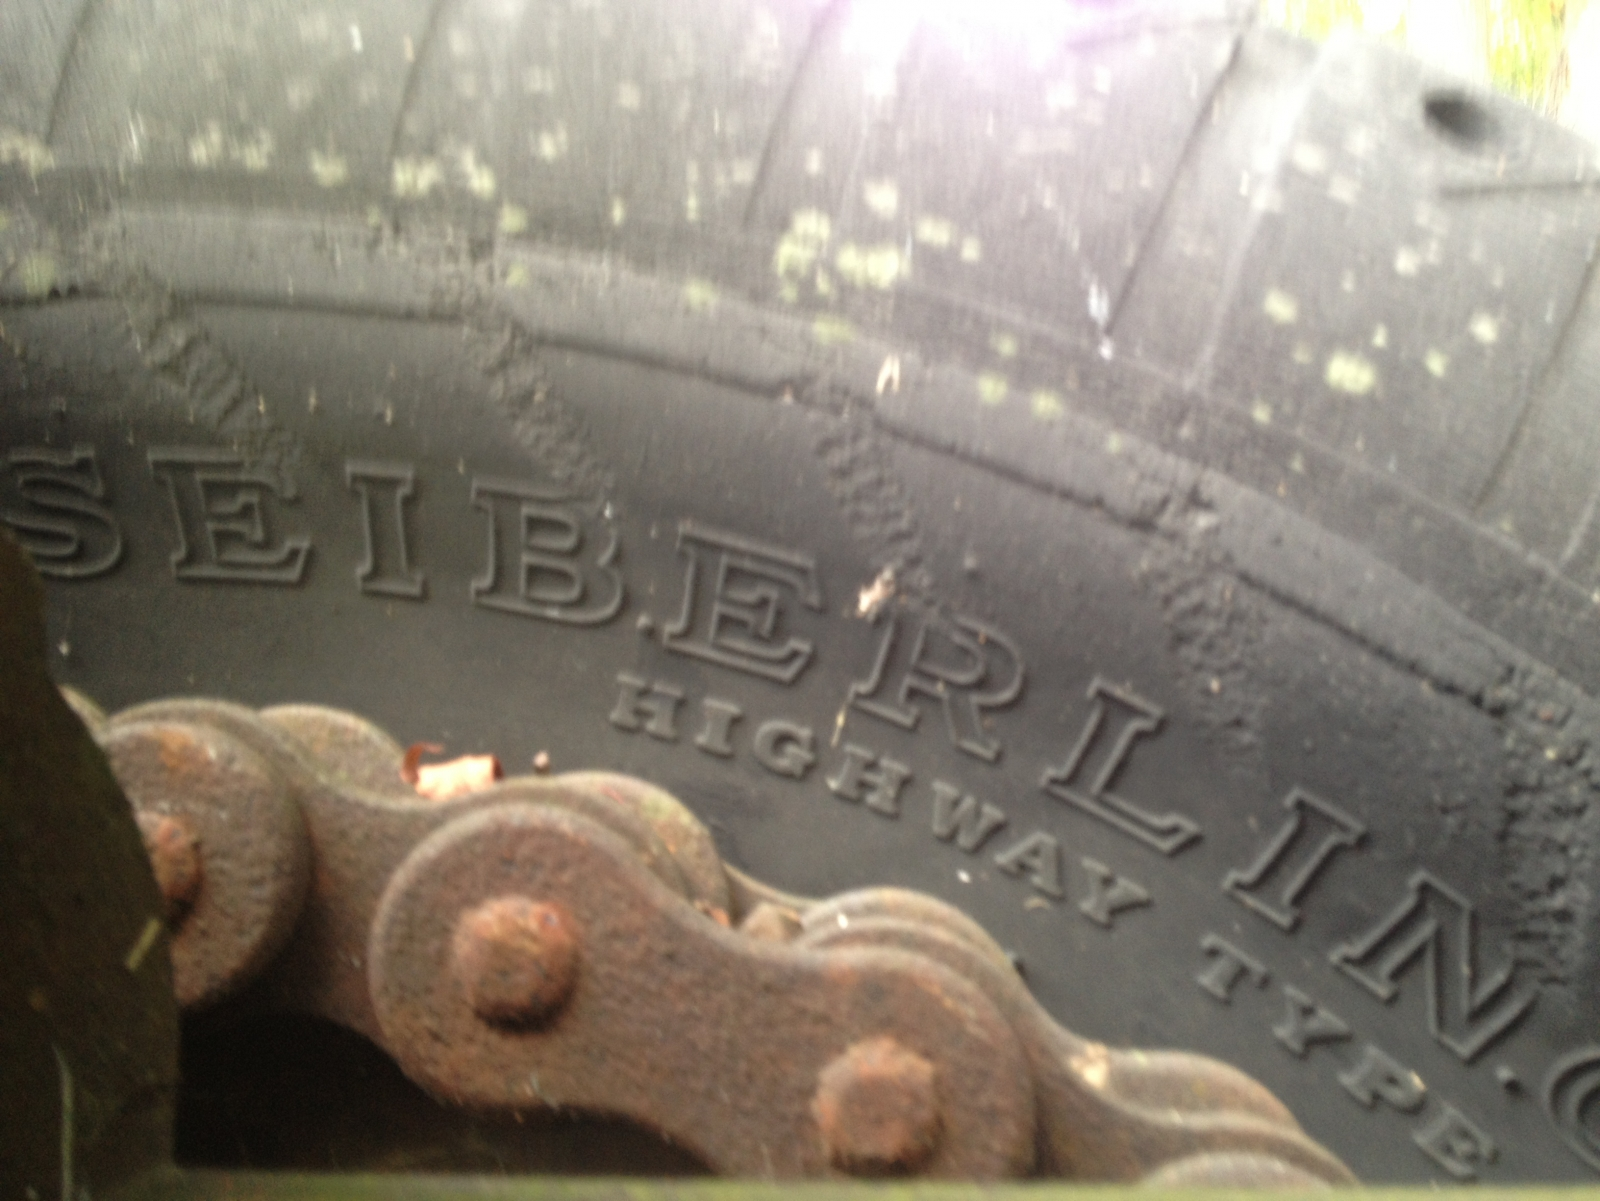 Cool old tires.   No good.